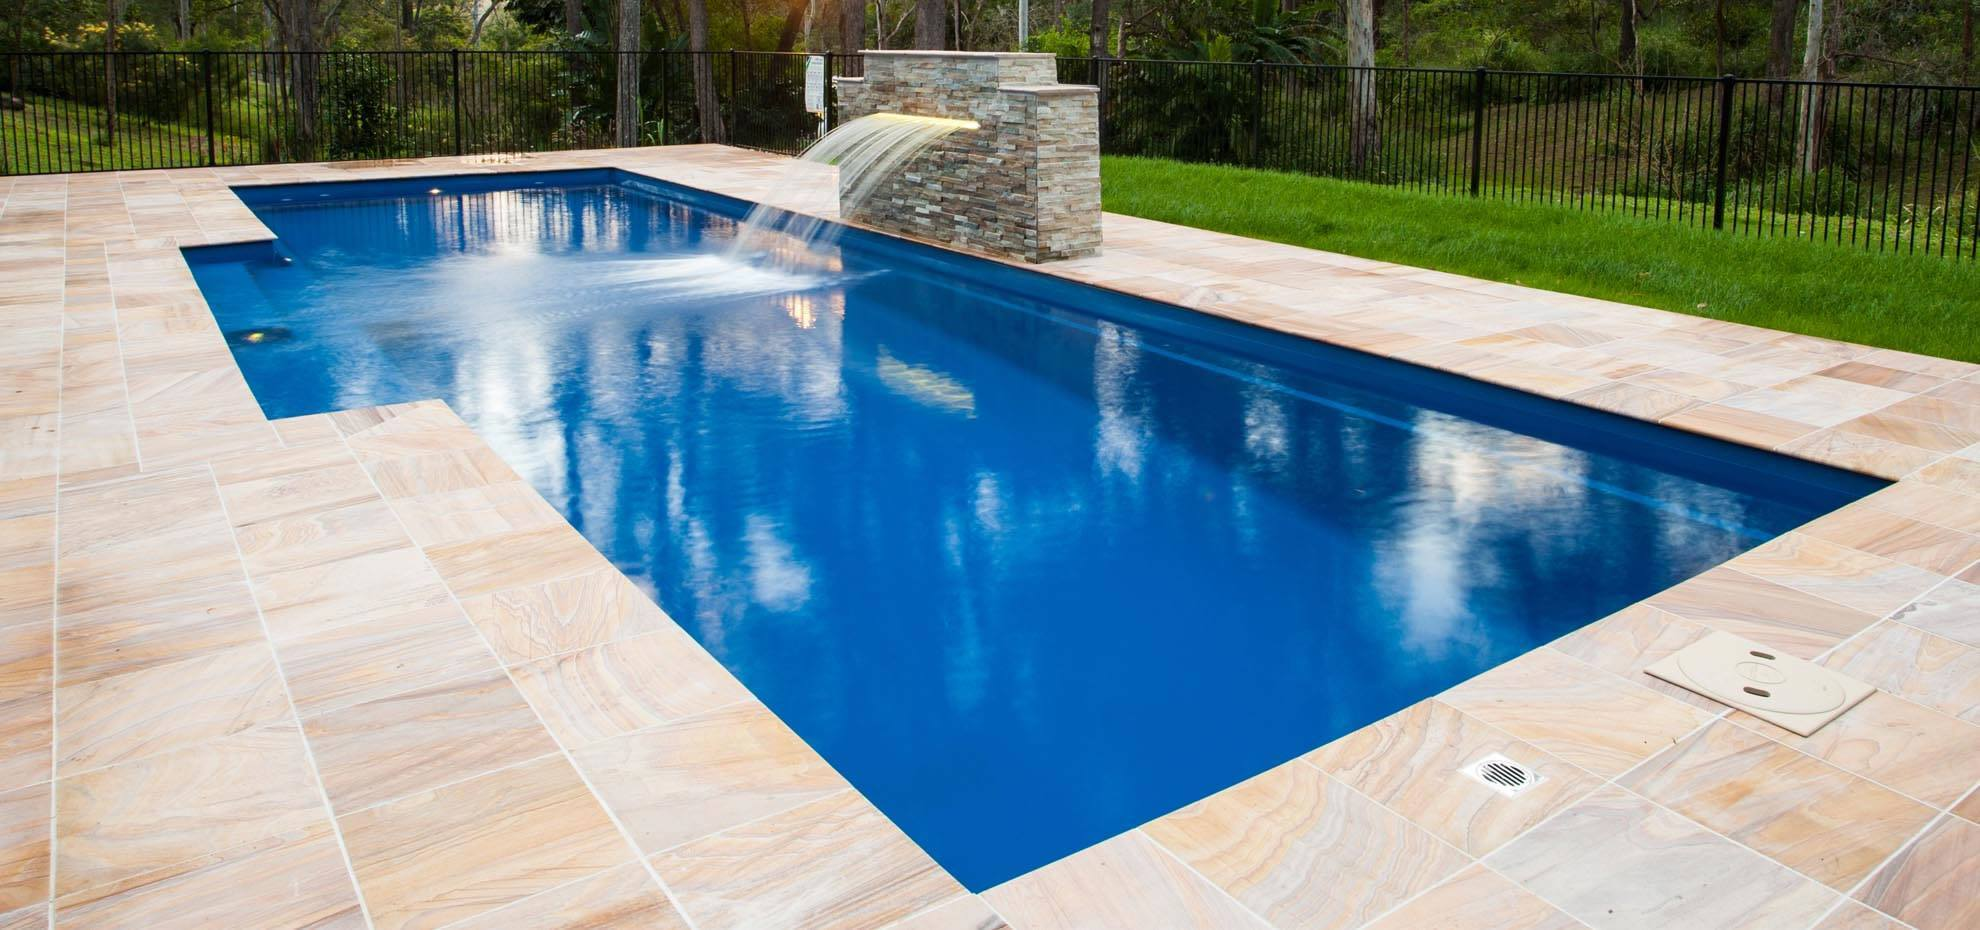 Elegance style fibreglass pool with coping and water feature by Leisure Pools